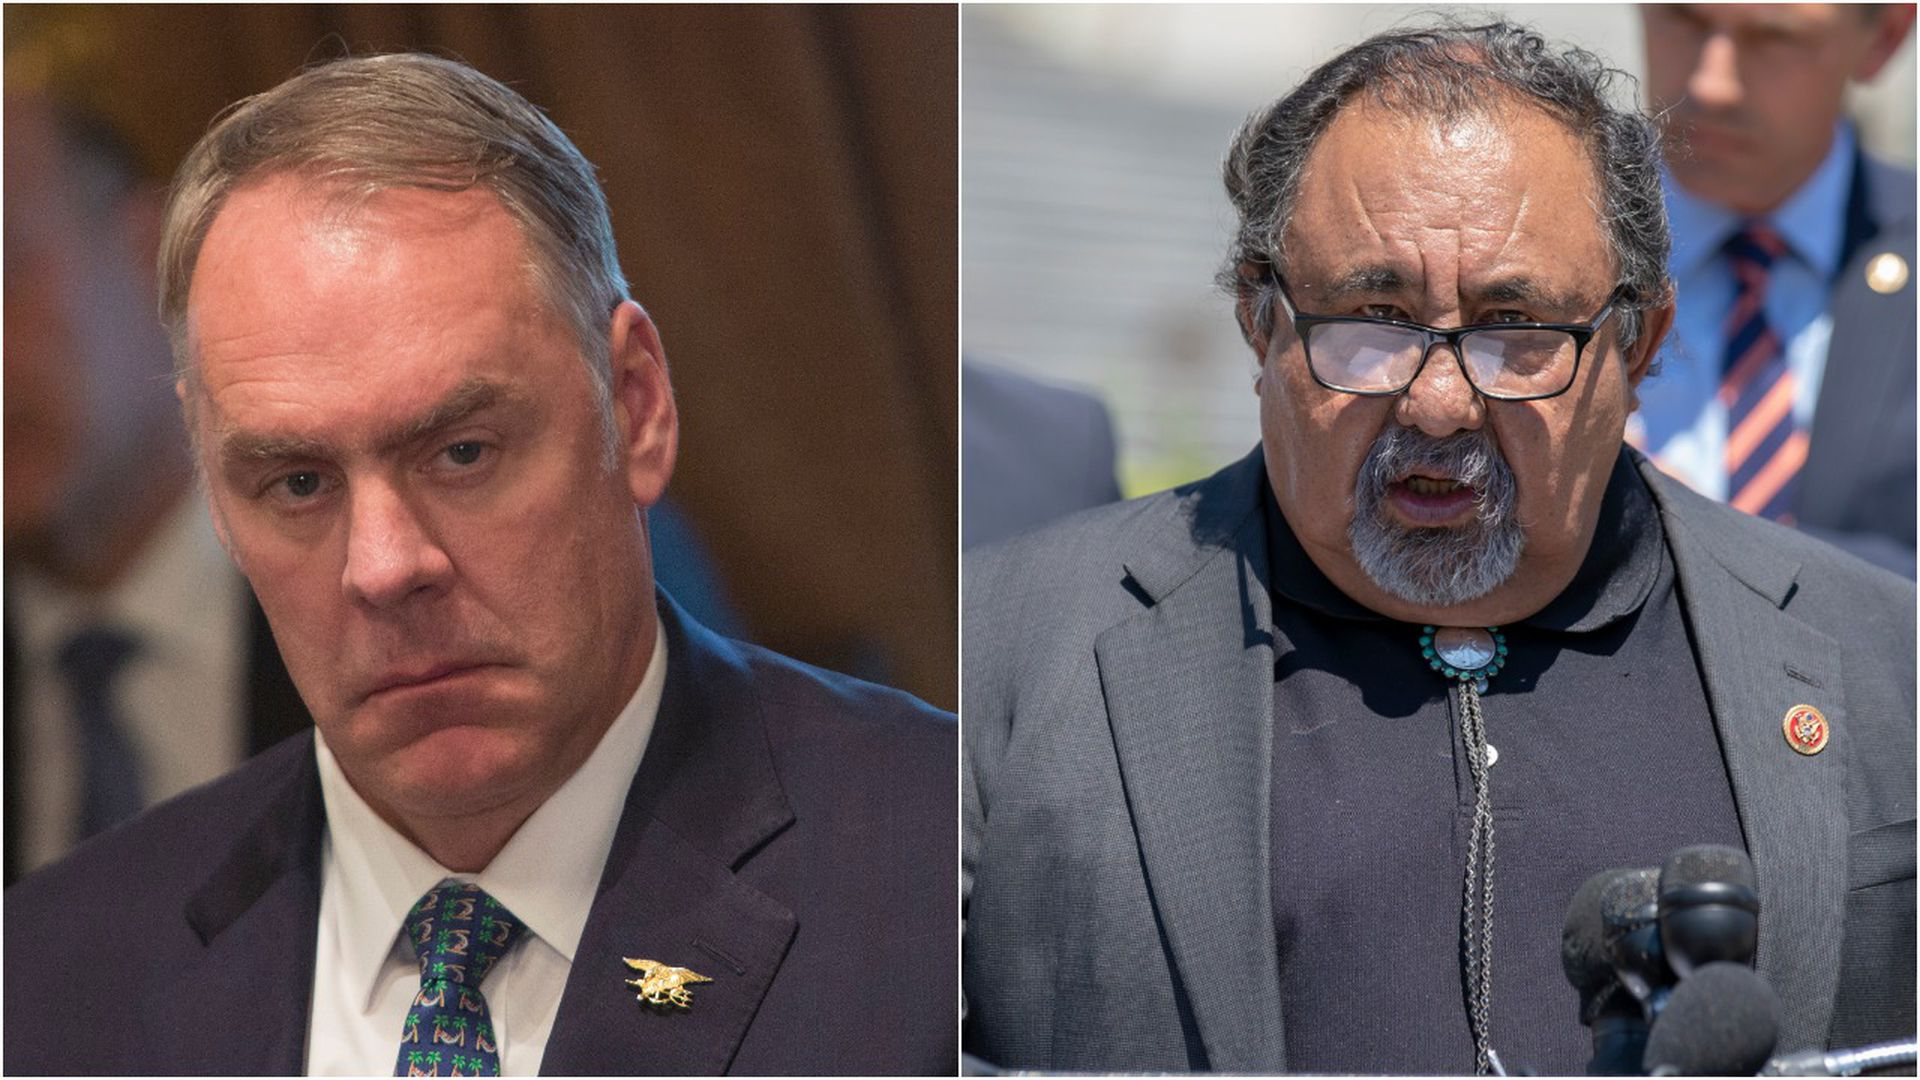 A joined photo of Ryan Zinke and Rep. Raúl Grijalva